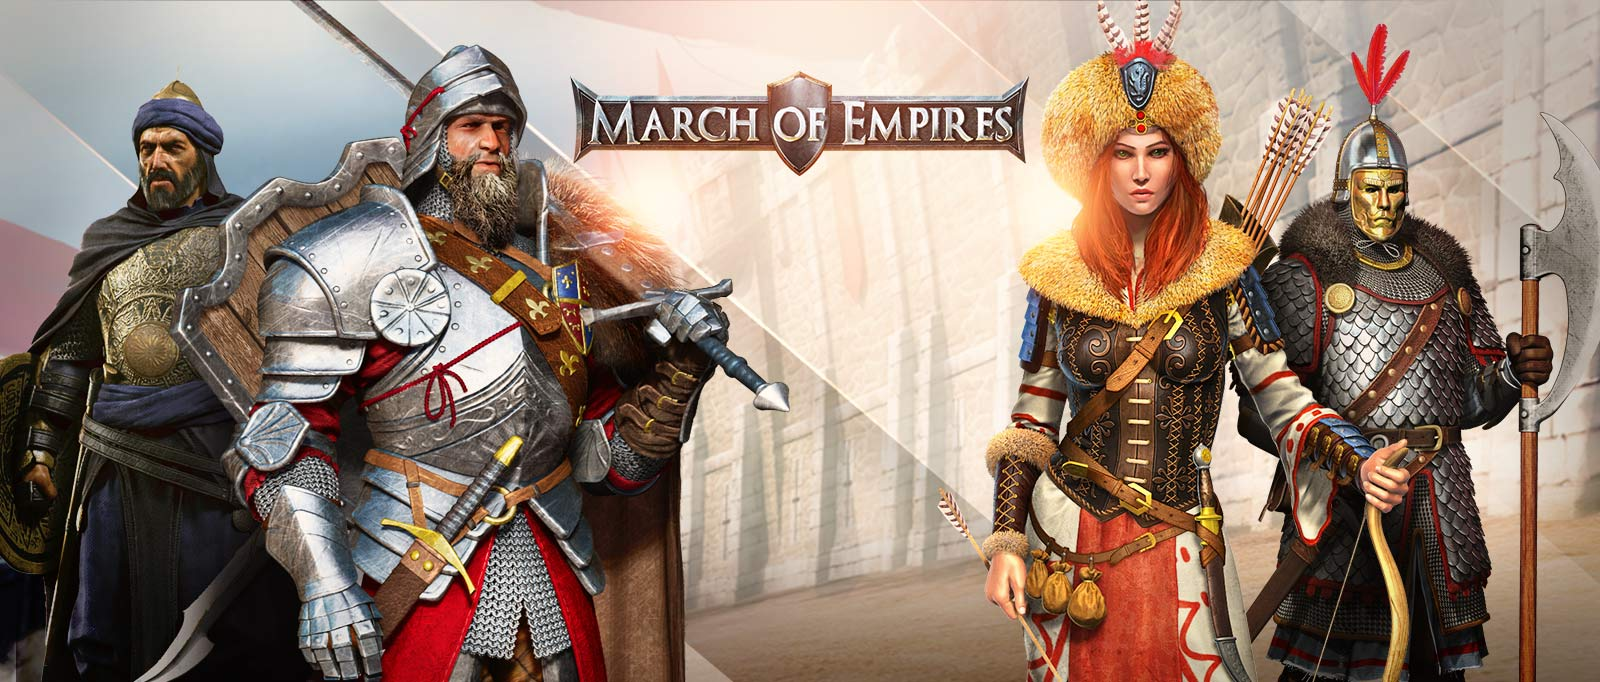 March of Empires: ¡Gobierna tu Reino!